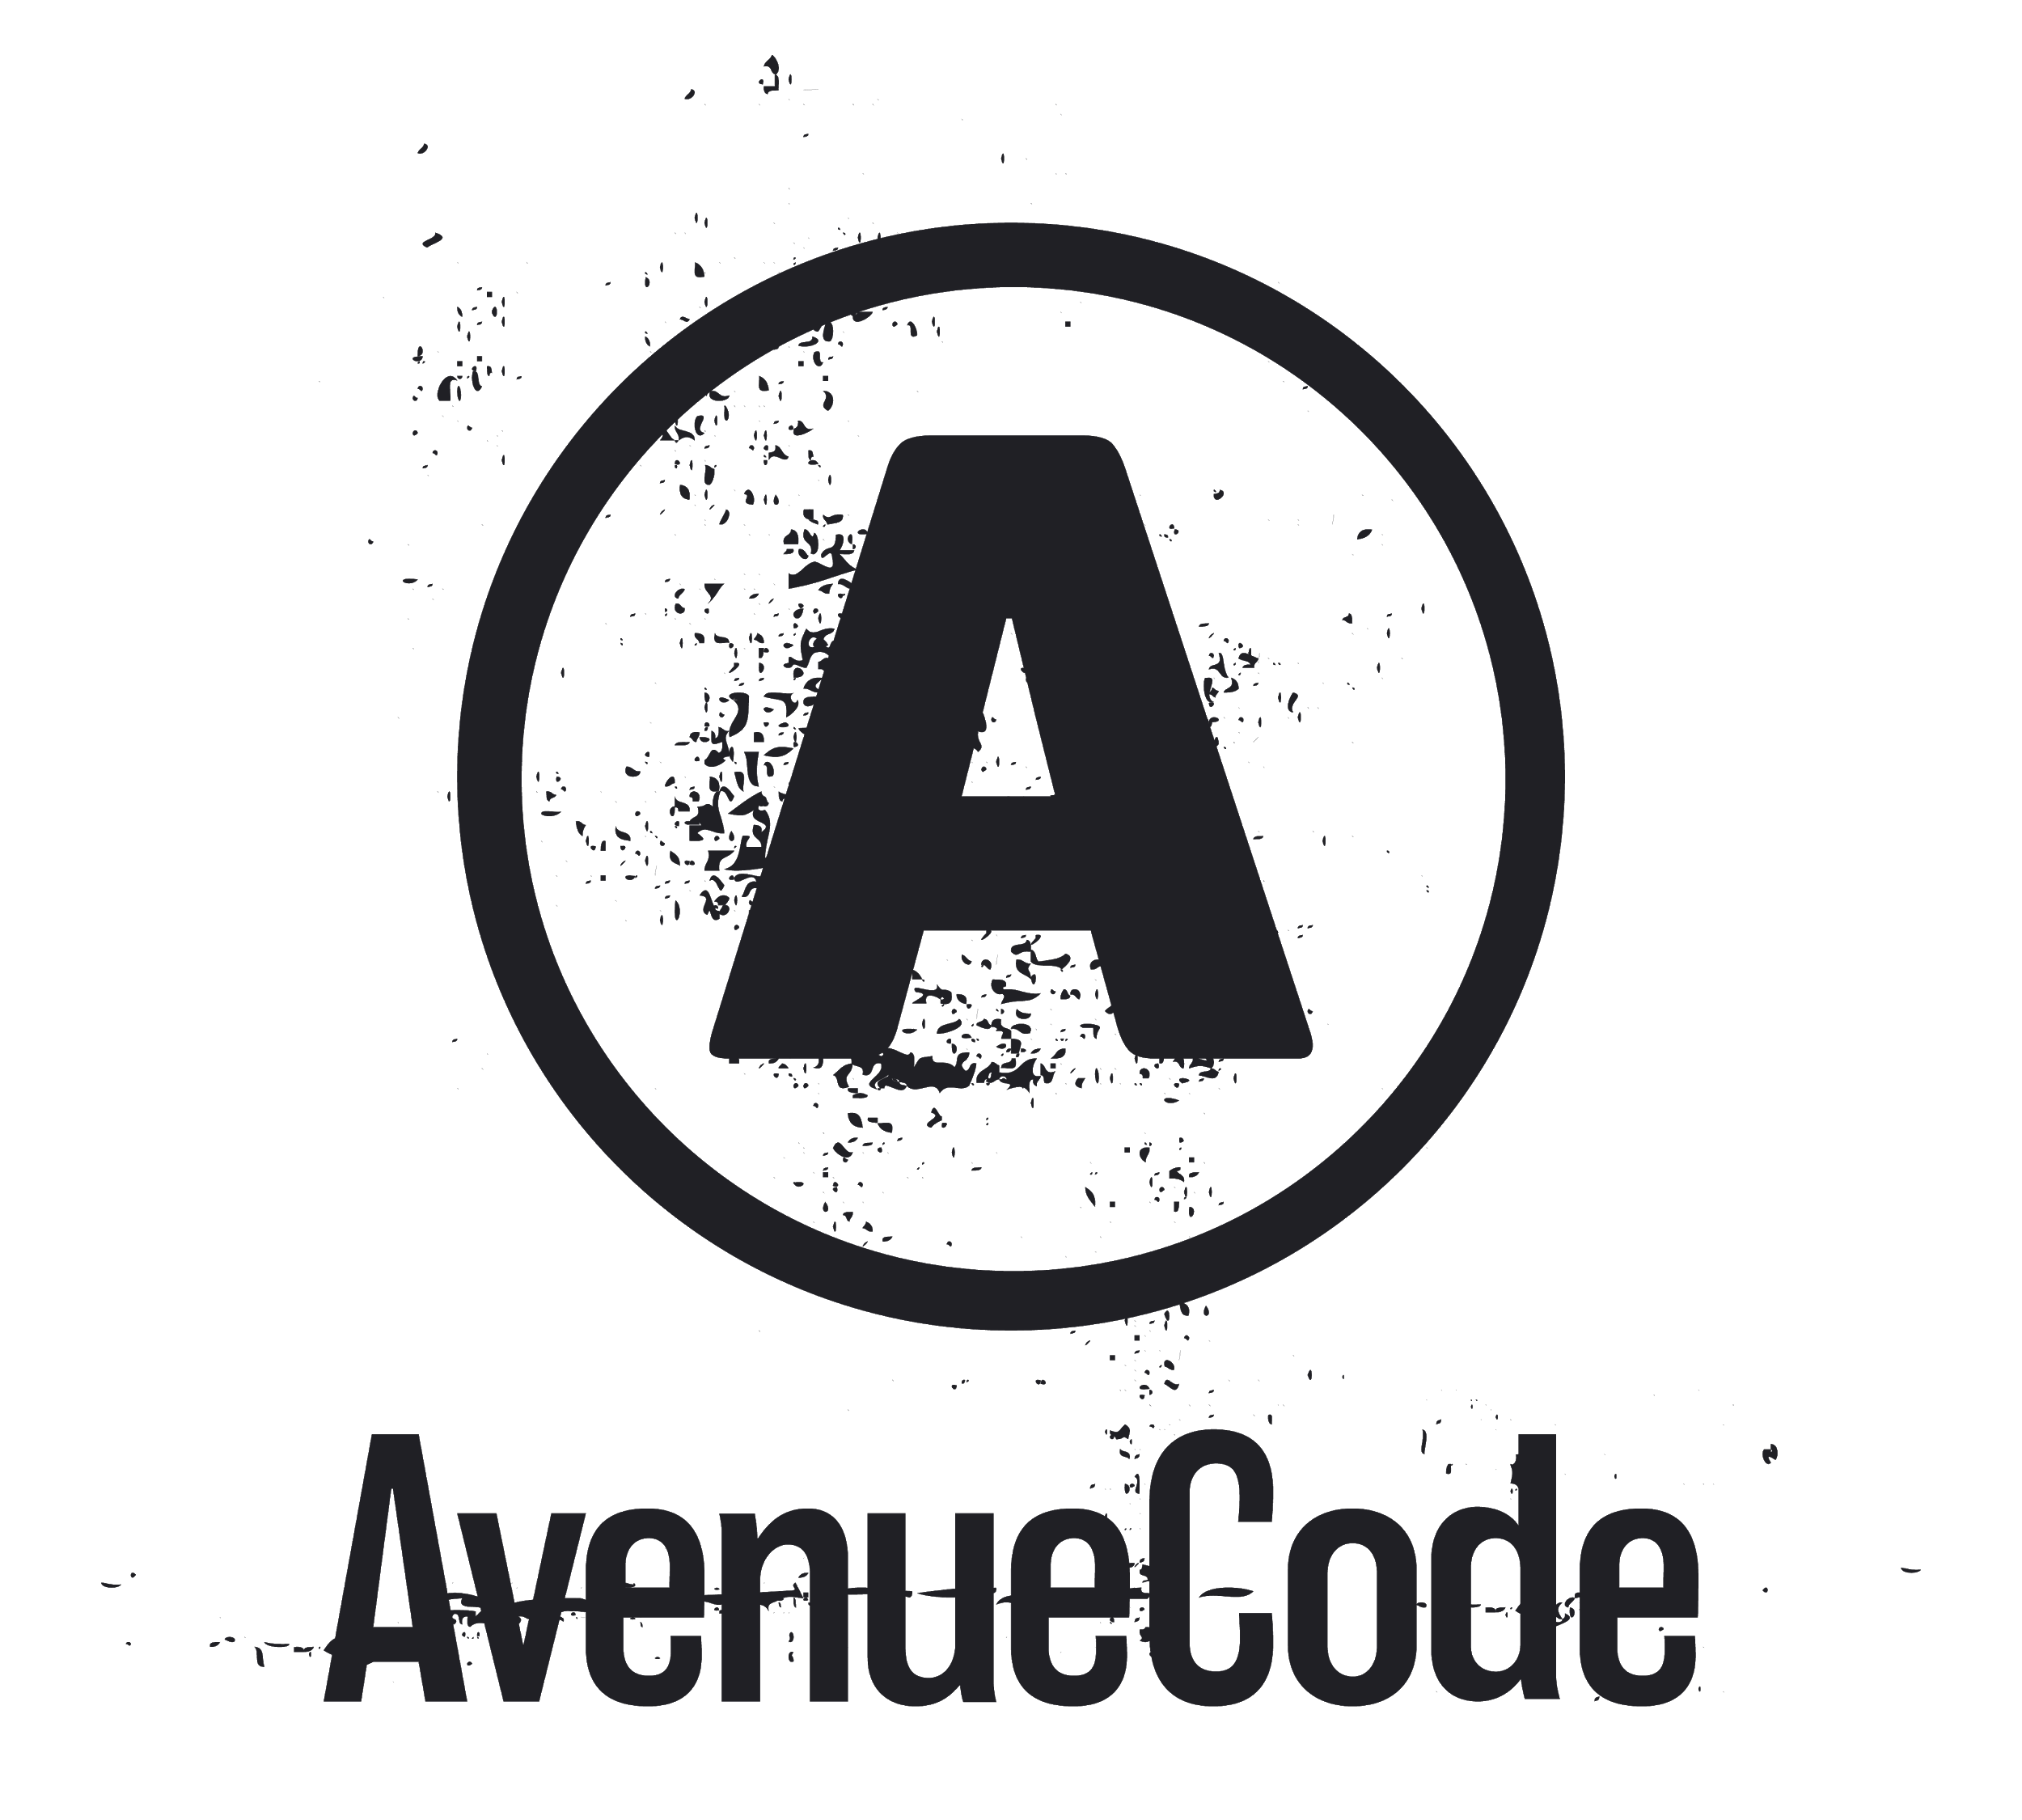 Avenue Code Named Global Leader in Tech and Culture